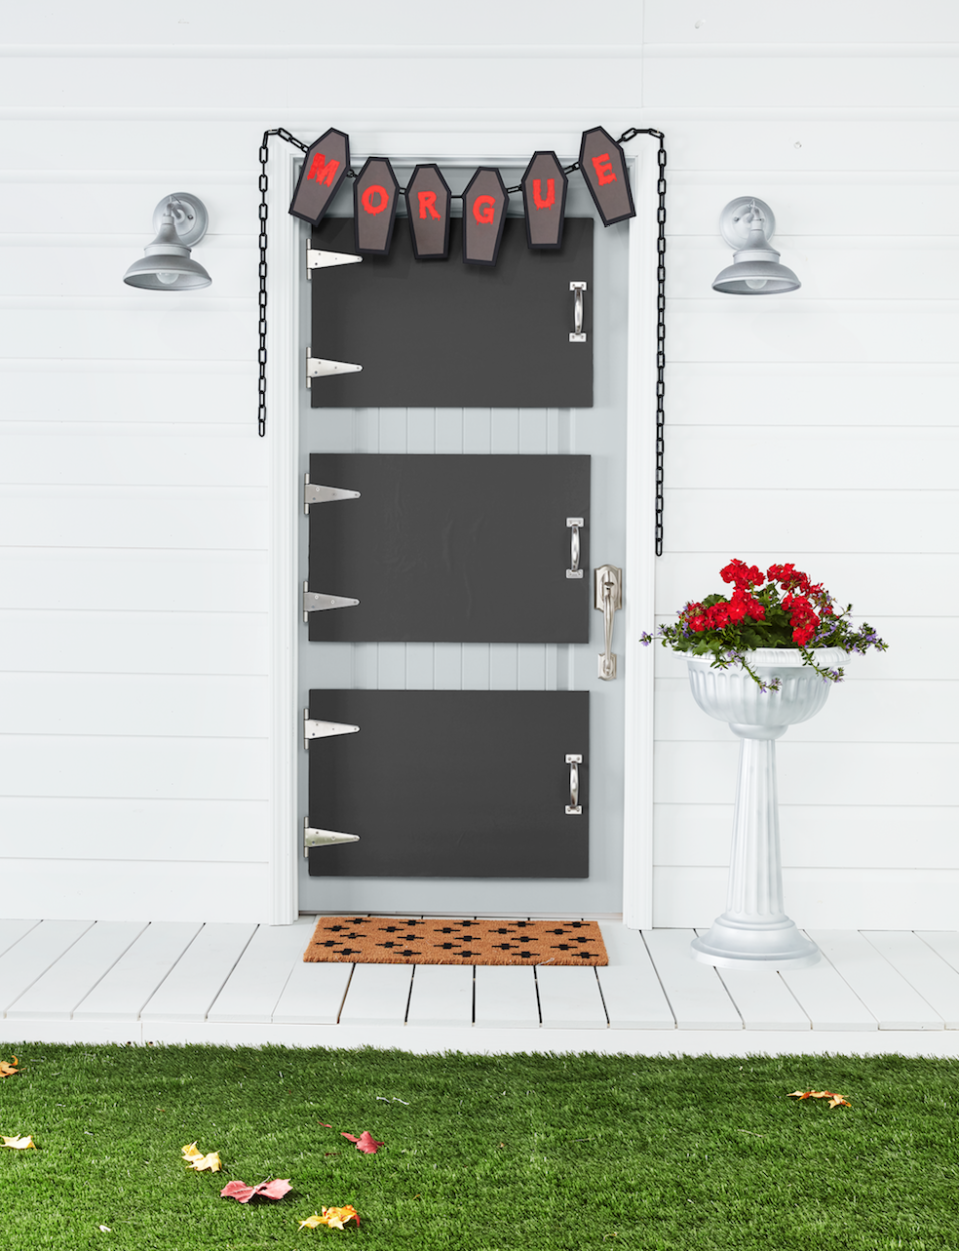 "<p>Although there are many ways to turn your door into a spooky entrance, we think this morgue idea is the creepiest of them all. </p><p><strong>Make the Morgue Door</strong><strong>: </strong>Attach three precut 20- by 30-inch pieces of foam core together with spray adhesive. Attach a piece of black paper, cut to size, to the top piece of foam core using spray adhesive. Insert the rectangular piece of two 6-inch stainless steel T-hinges between the first and second pieces of foam core on one of the short sides; ""screw"" in place. Place a 6 1/2-inch handle on the opposite side; ""screw"" in place. Cover exposed edges of the foam core with silver duct tape, folding any excess to the back. Make two more doors. Adhere to house door with heavy- duty self-adhesive Velcro. Cut five coffin shapes from black and gray kraft paper. Paint letters on gray coffins with red acrylic paint to spell ""morgue"" and attach to black coffins with double-sided tape. Hang a plastic chain above the door and attach coffin cutouts with hot-glue. Add plastic pedestal planter painted Titanium Silver by Rust-Oleum and ""Swiss Cross"" doormat.</p><p><a class=""link rapid-noclick-resp"" href=""https://www.amazon.com/Arteza-Boards-Lightweight-Presentations-Projects/dp/B07B867PJR/?tag=syn-yahoo-20&ascsubtag=%5Bartid%7C10050.g.22350299%5Bsrc%7Cyahoo-us"" rel=""nofollow noopener"" target=""_blank"" data-ylk=""slk:SHOP FOAM CORE BOARD"">SHOP FOAM CORE BOARD</a></p>"